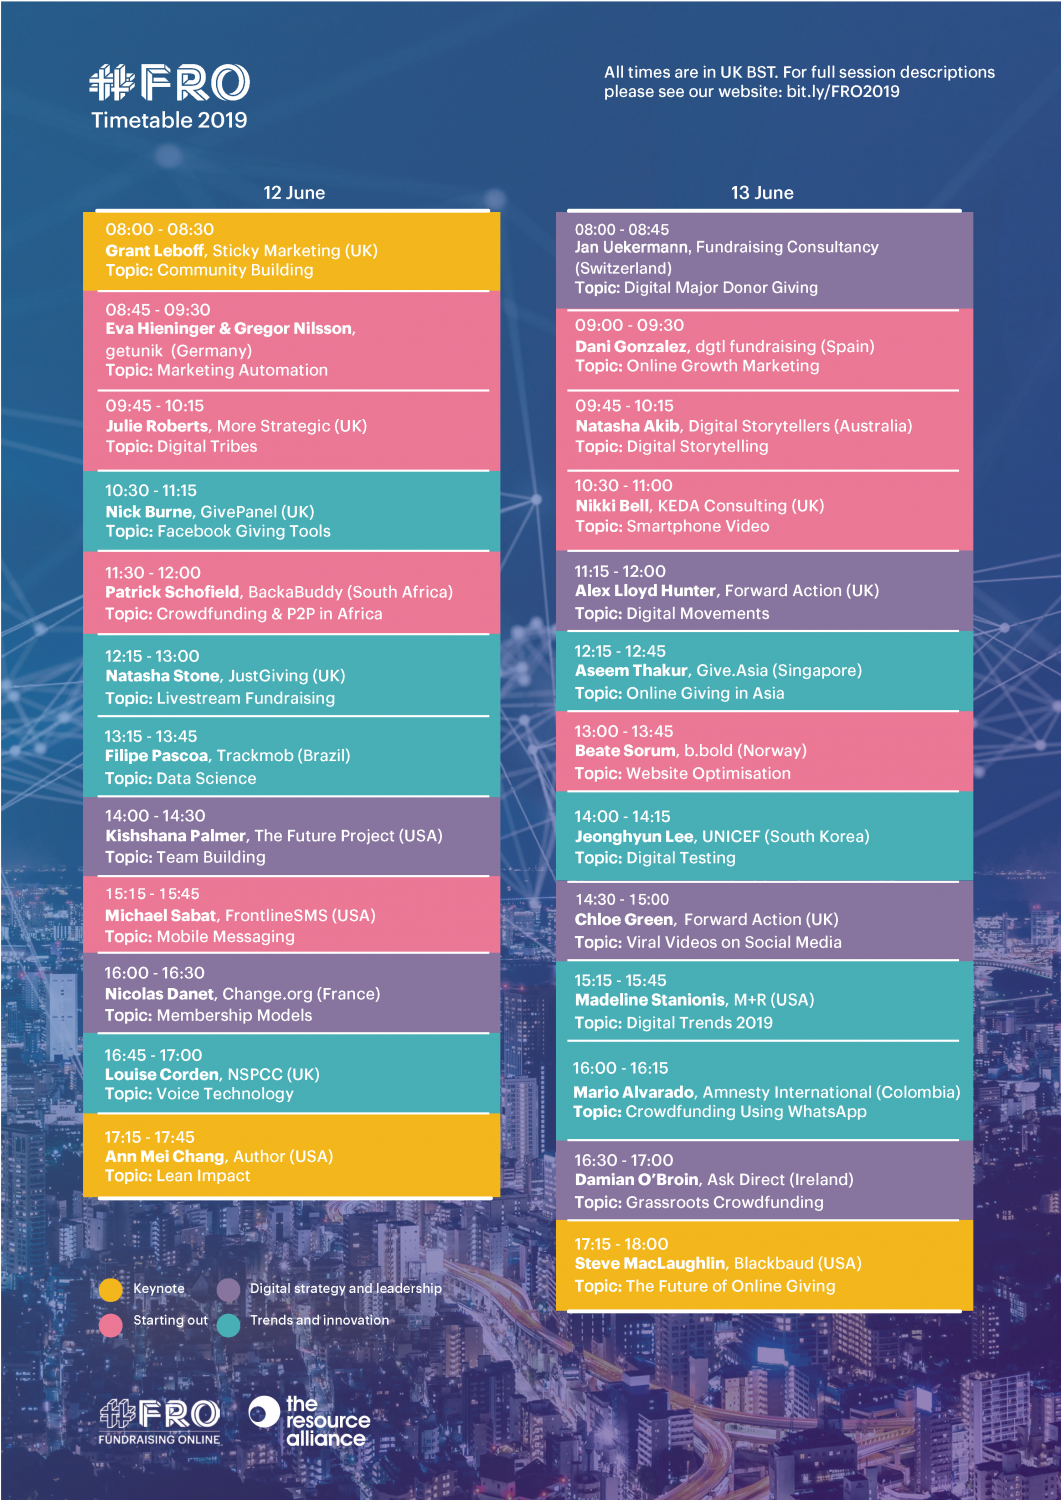 FRO 2019 Timetable